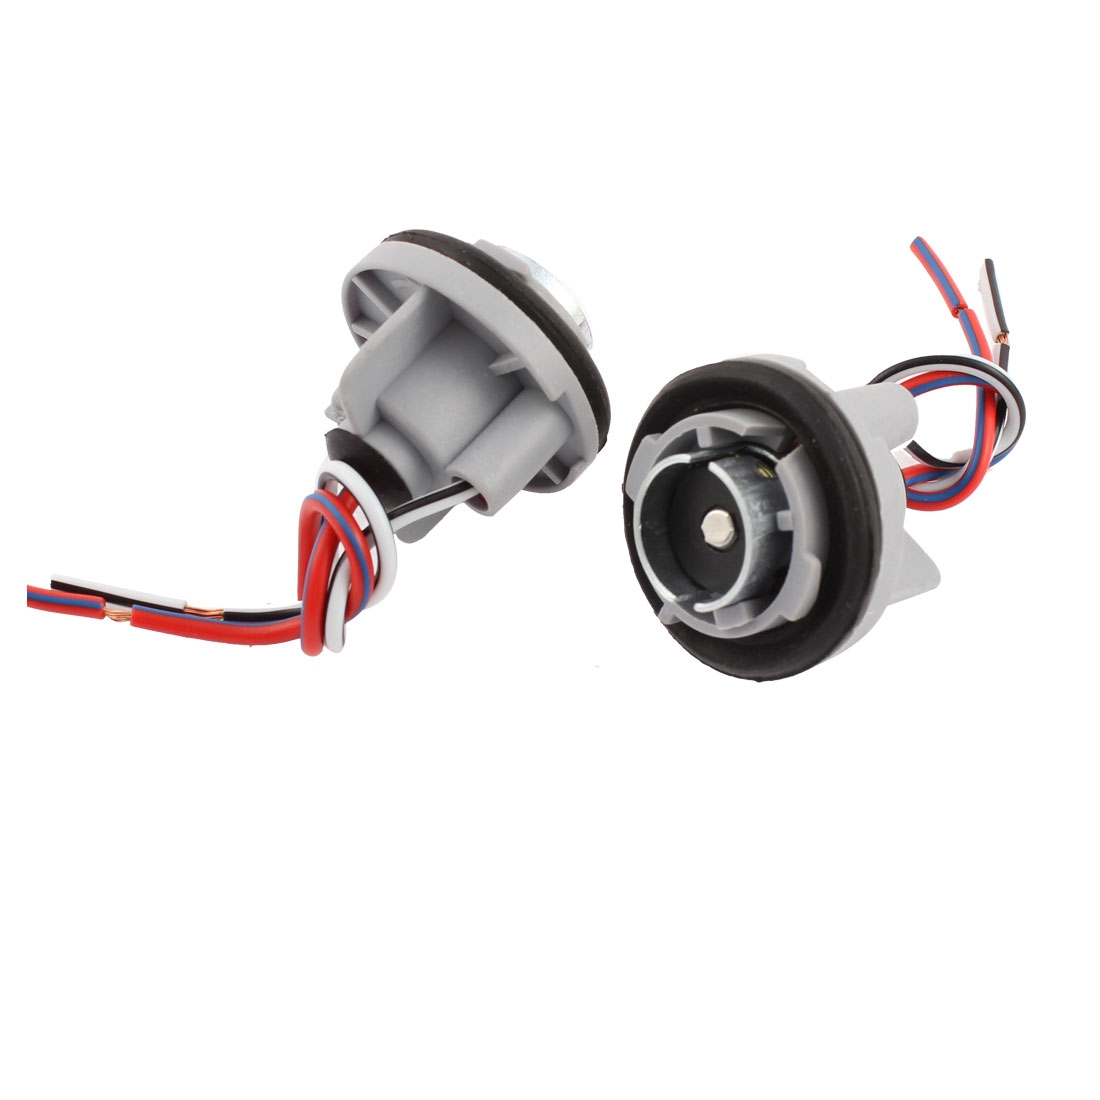 2 Pcs 1156 Brake Turn Signal Light Socket Connector Wire Harness for Car Auto